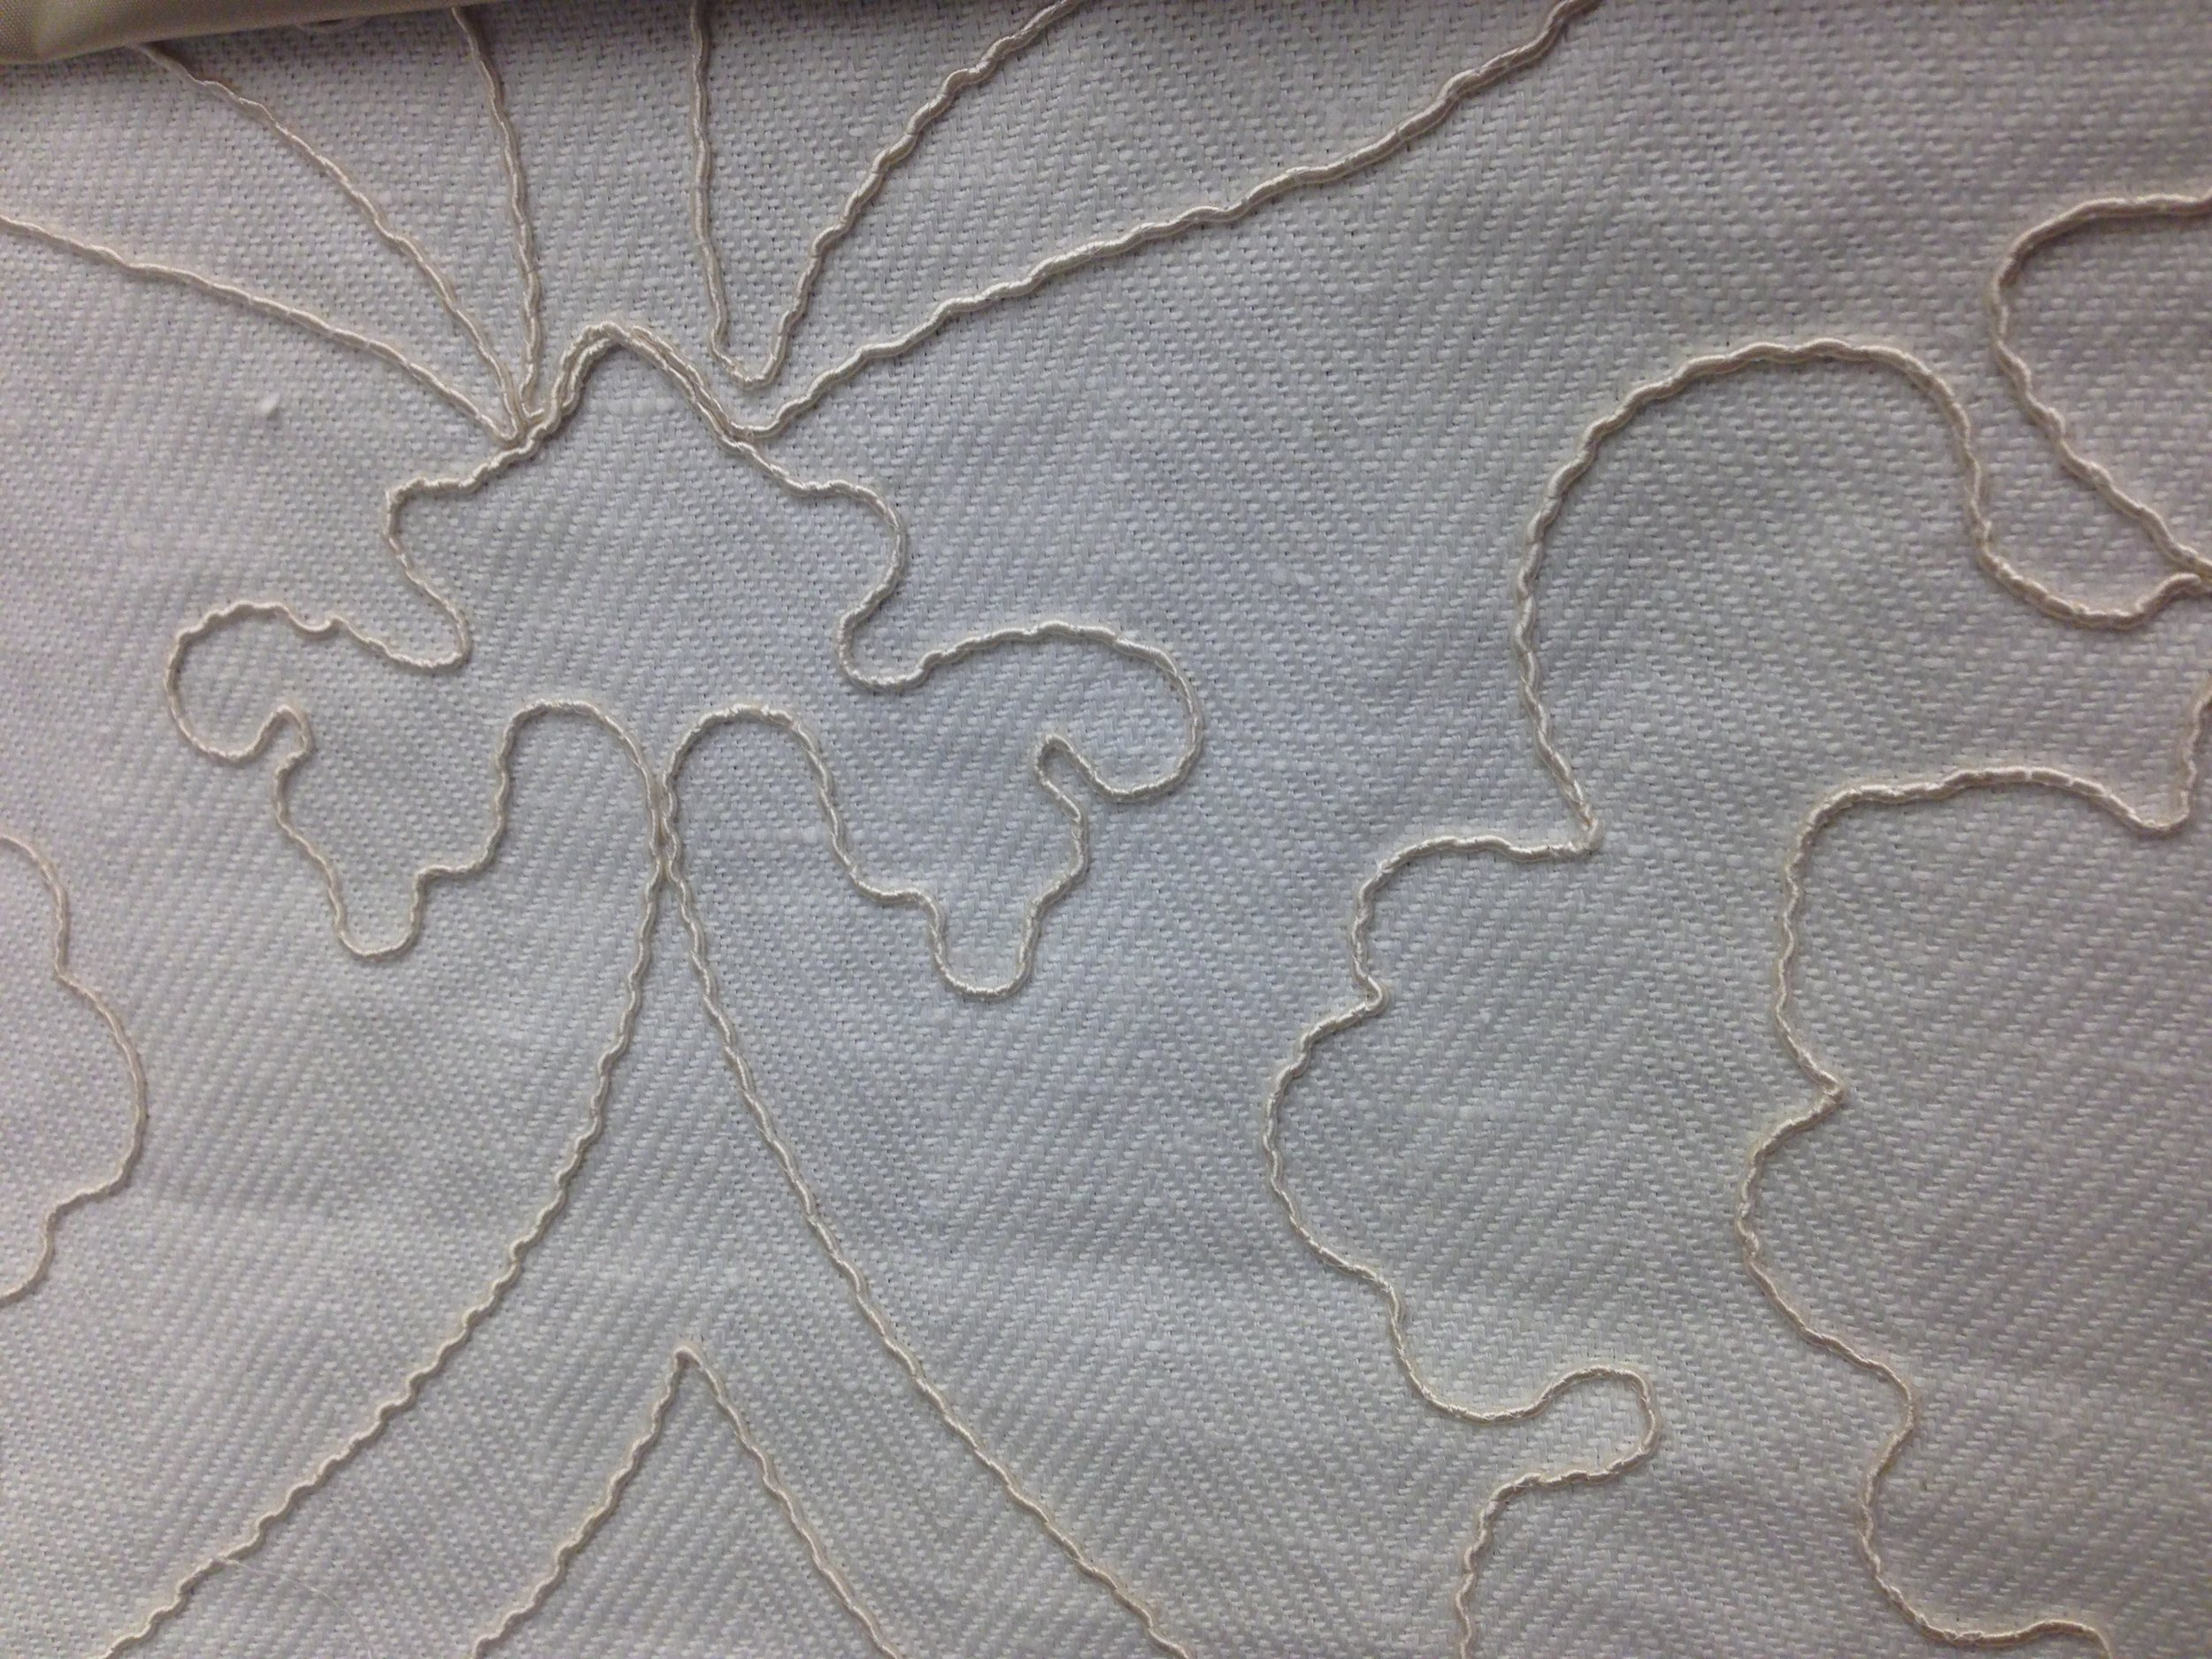 embroidered damask pattern on herringbone weave